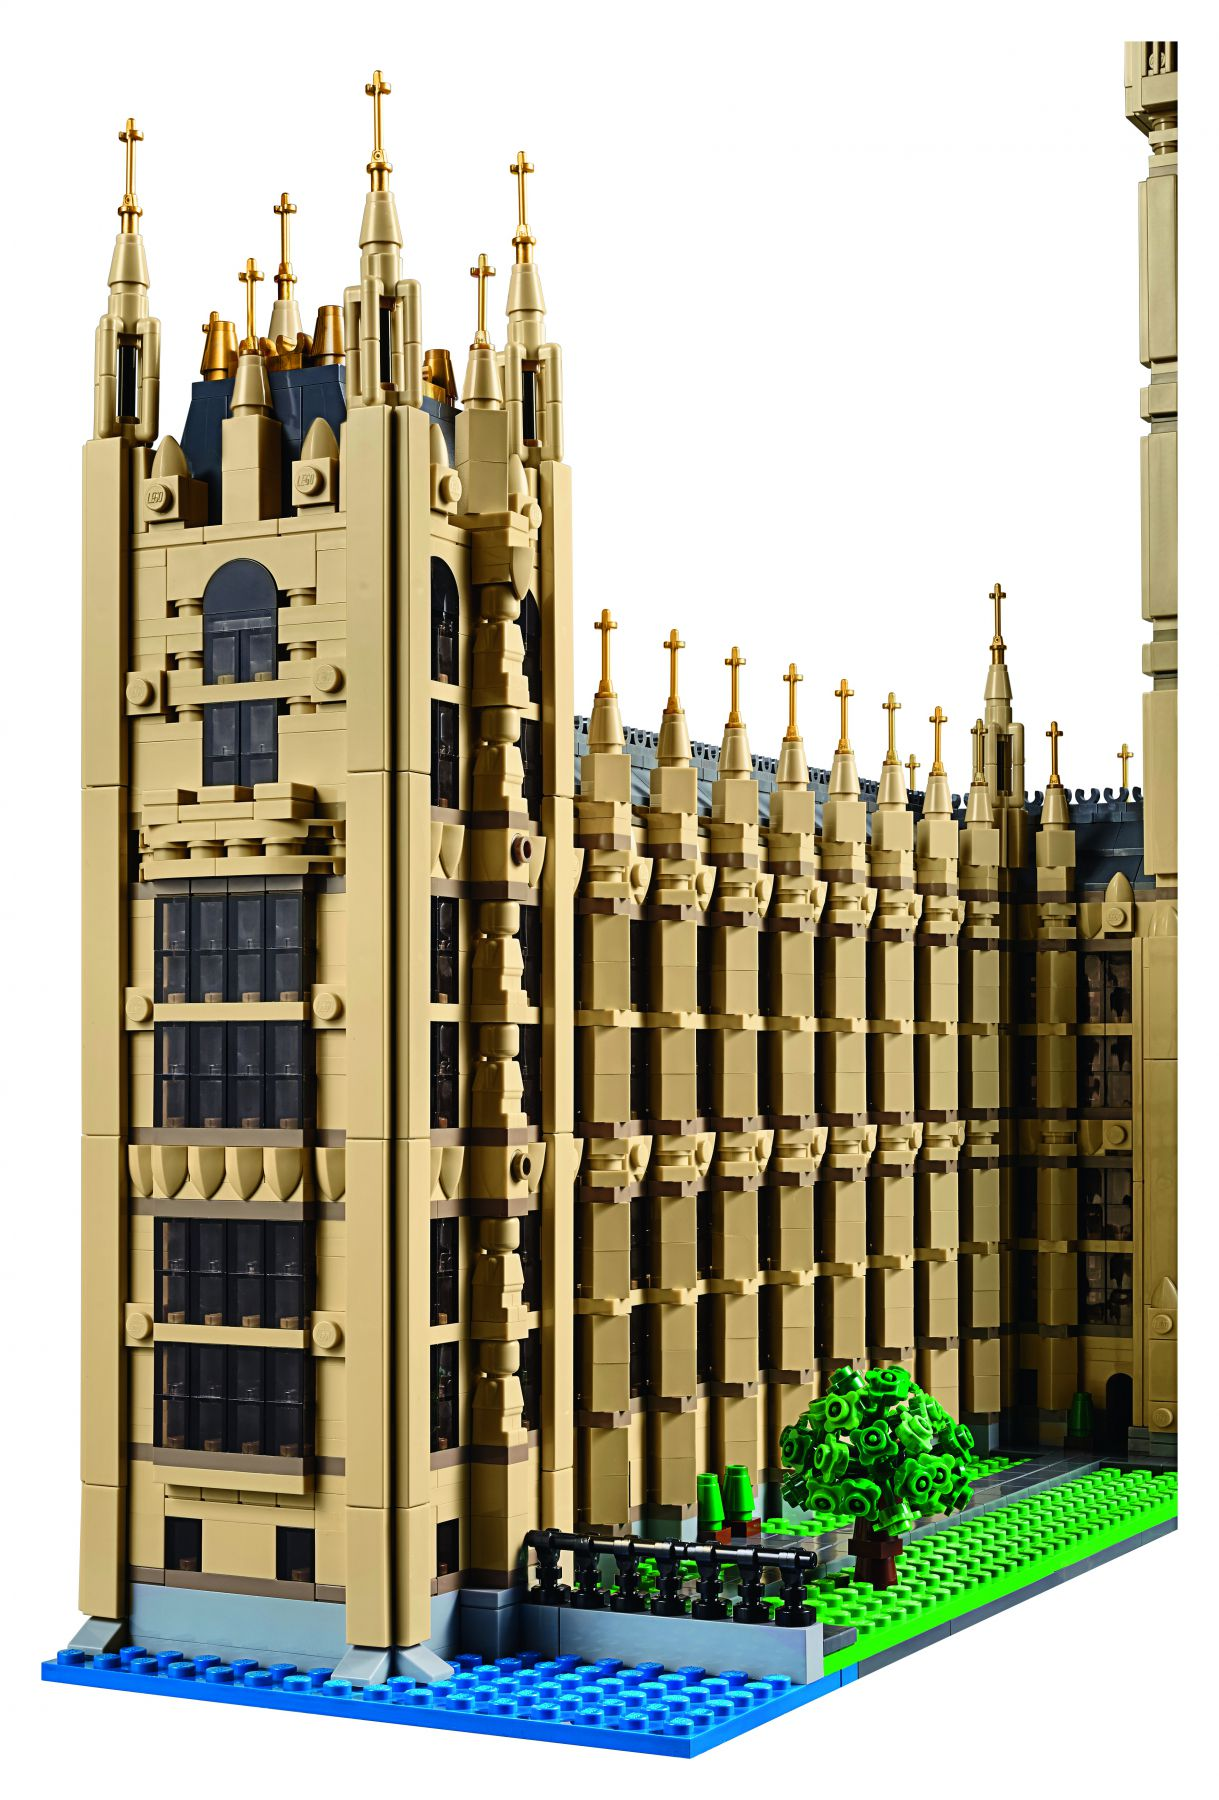 LEGO Advanced Models 10253 Big Ben LEGO_Creator_Big_Ben_10253-10.jpg